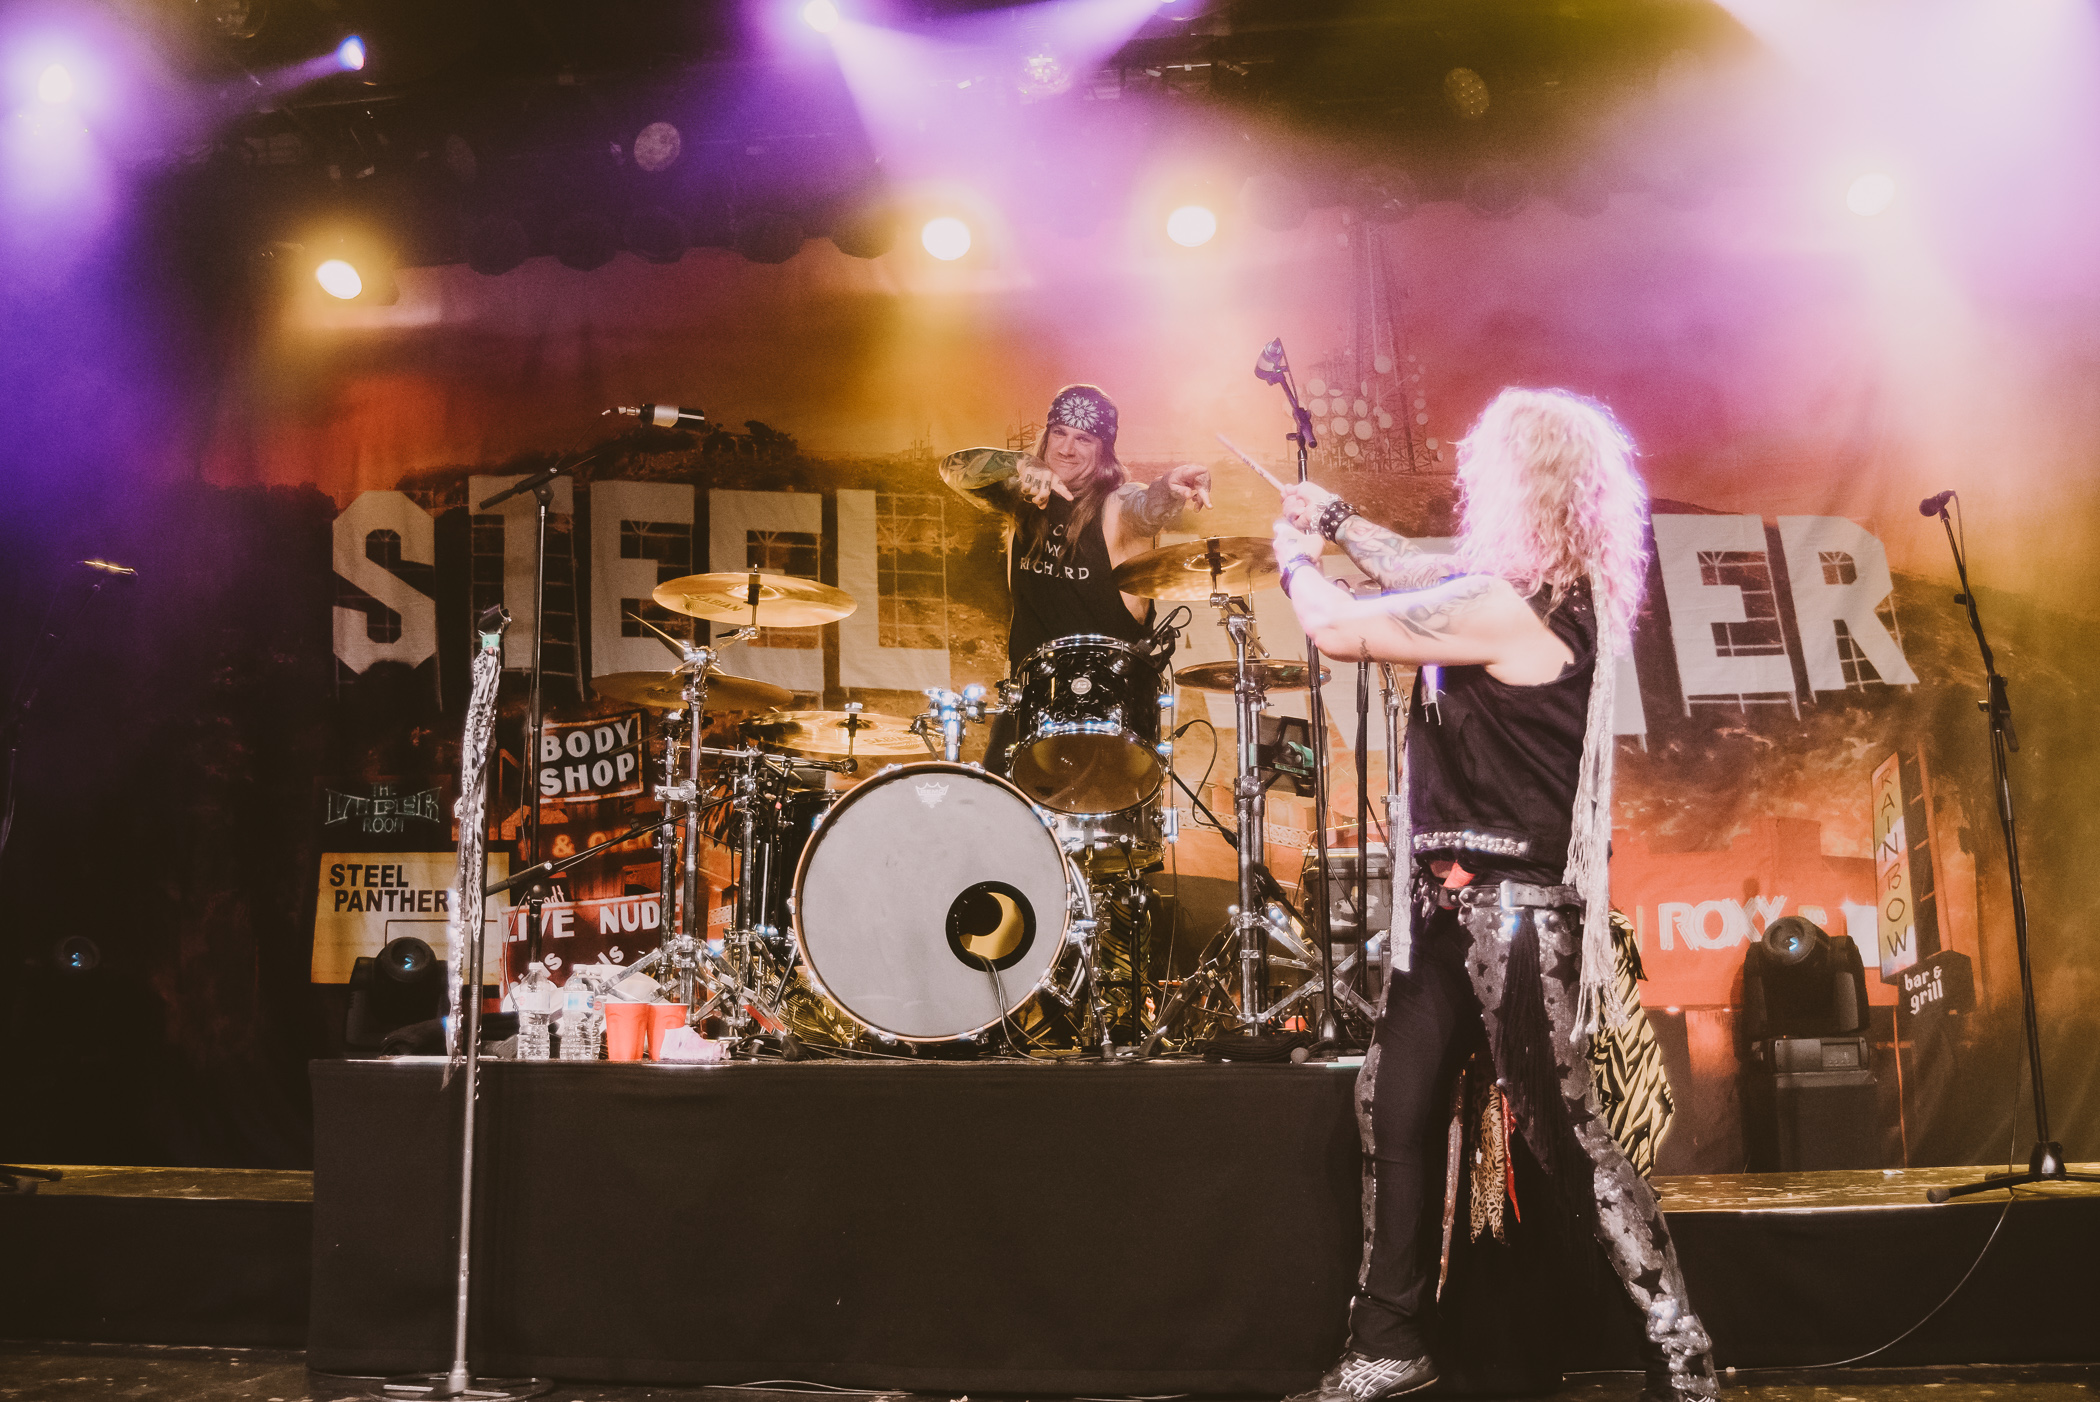 1_Steel_Panther-Commodore-Ballroom-Timothy_Nguyen-20190411 (16 of 21).JPG